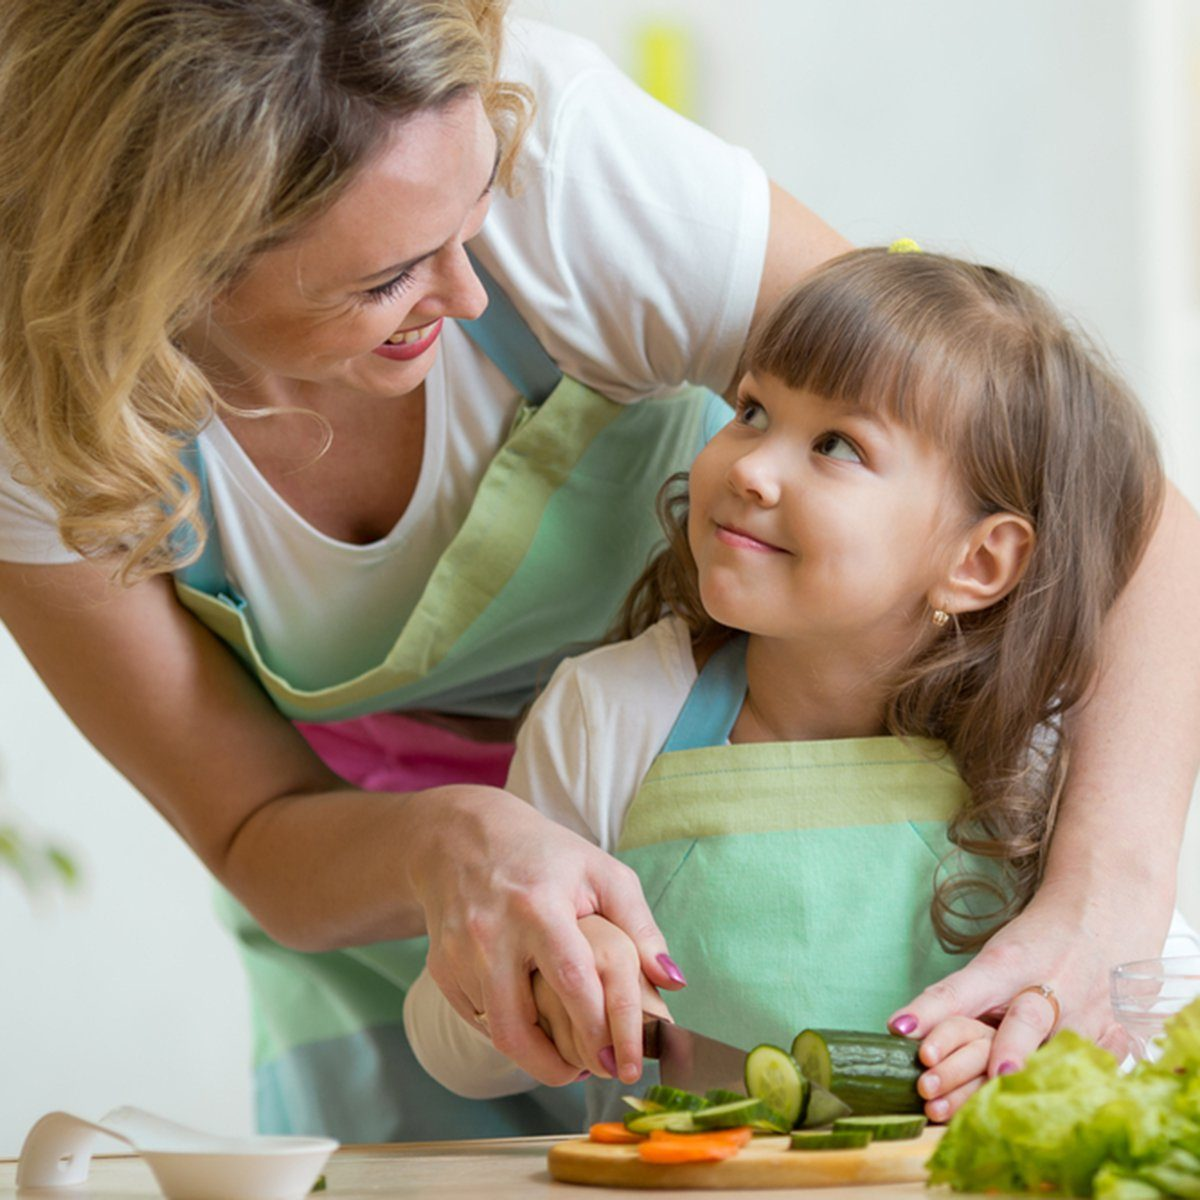 mother and kid girl cooking and cutting vegetables on kitchen; Shutterstock ID 253719916